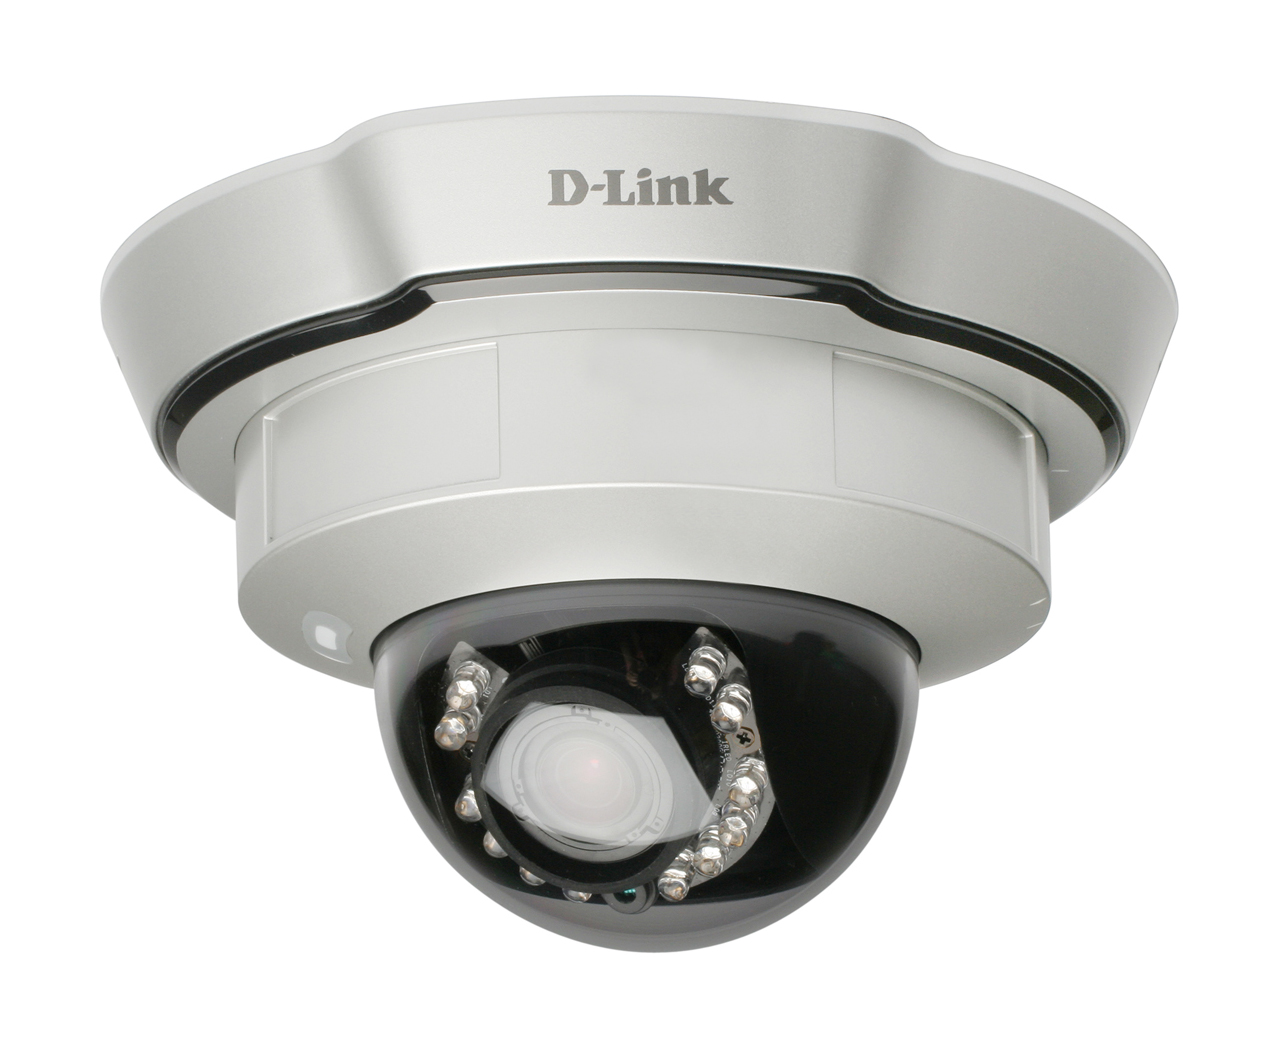 WDR Day & Night PoE fixed Dome Network Camera / D-Link Corporation